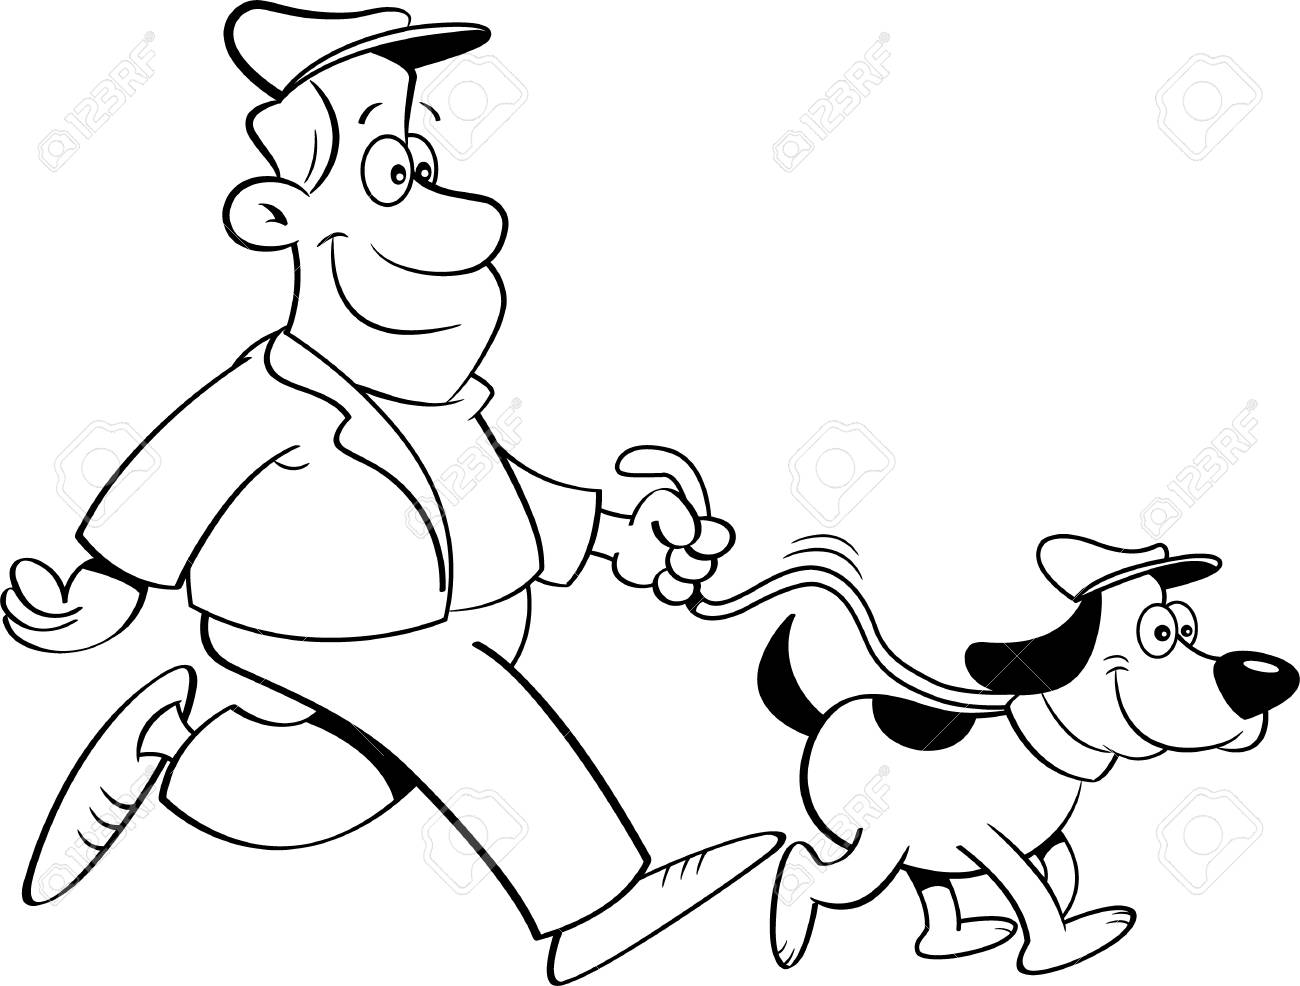 Black and white illustration of a man walking a dog..